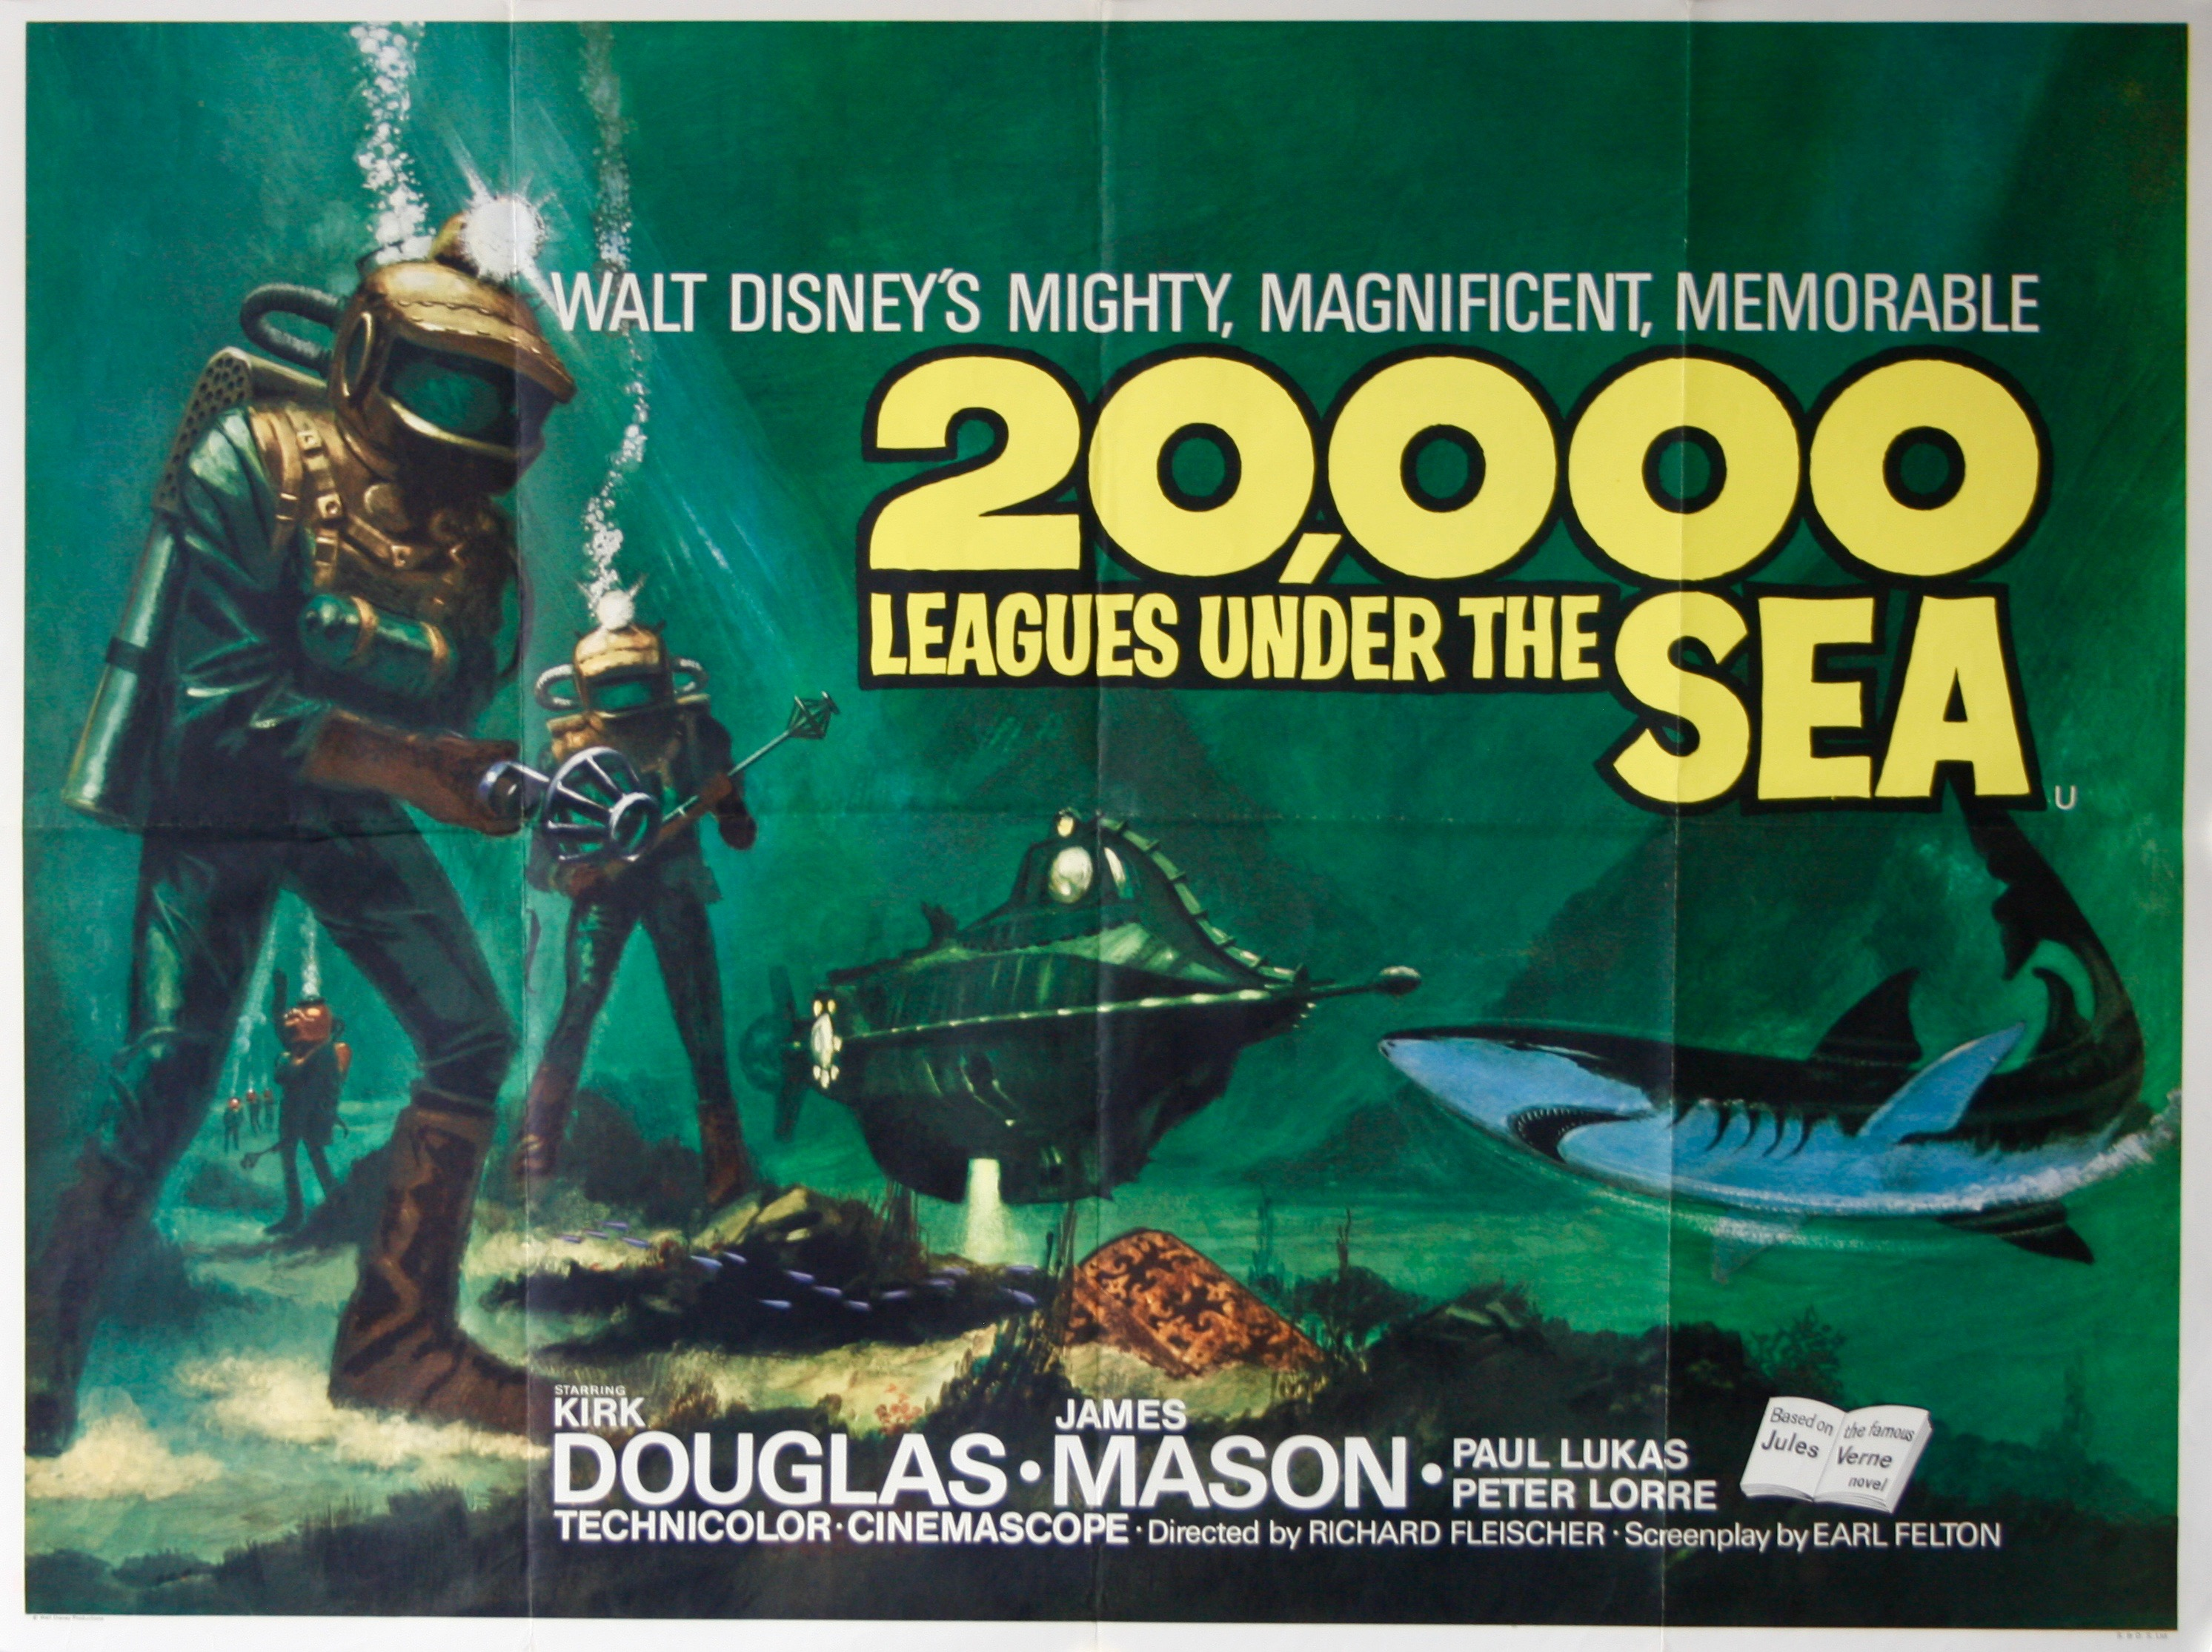 Fantasy Book Cover Posters ~ Leagues under the sea vintage movie posters